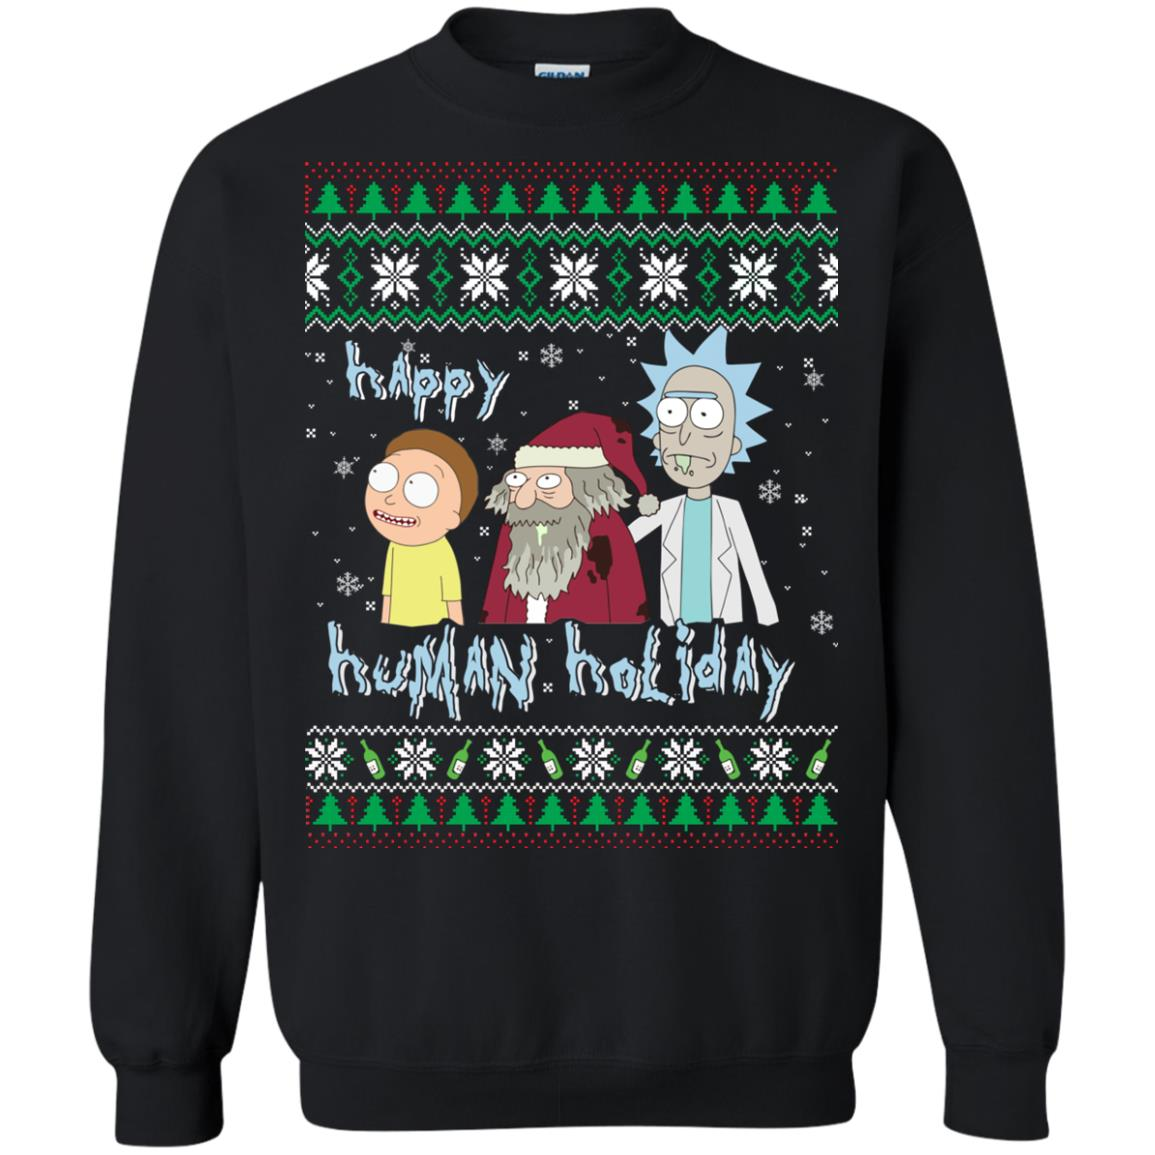 image 450px Rick and Morty: Happy Human Holiday Christmas Sweater